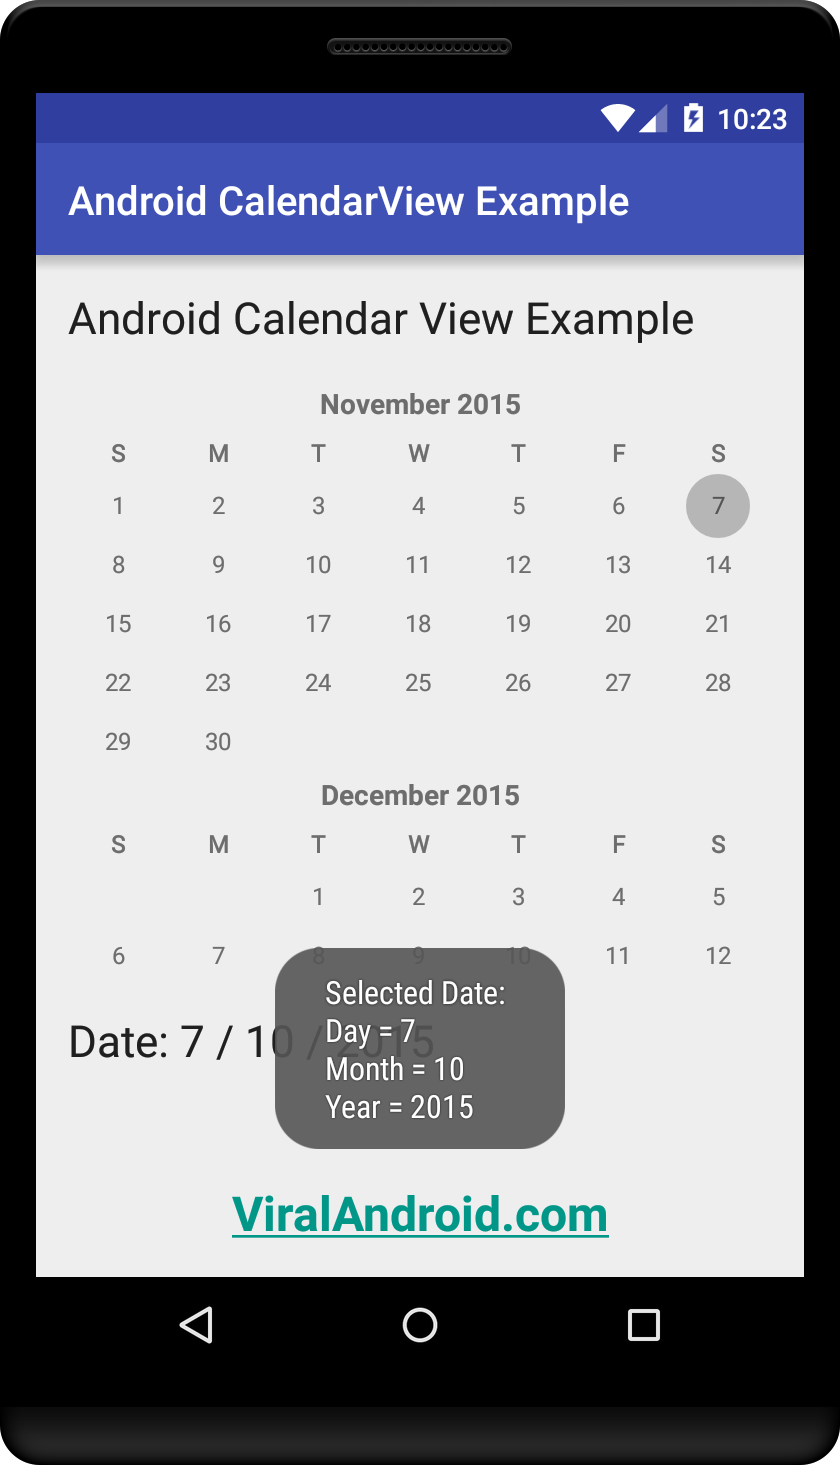 CalendarView Example: How to use Android Calendar View Widget